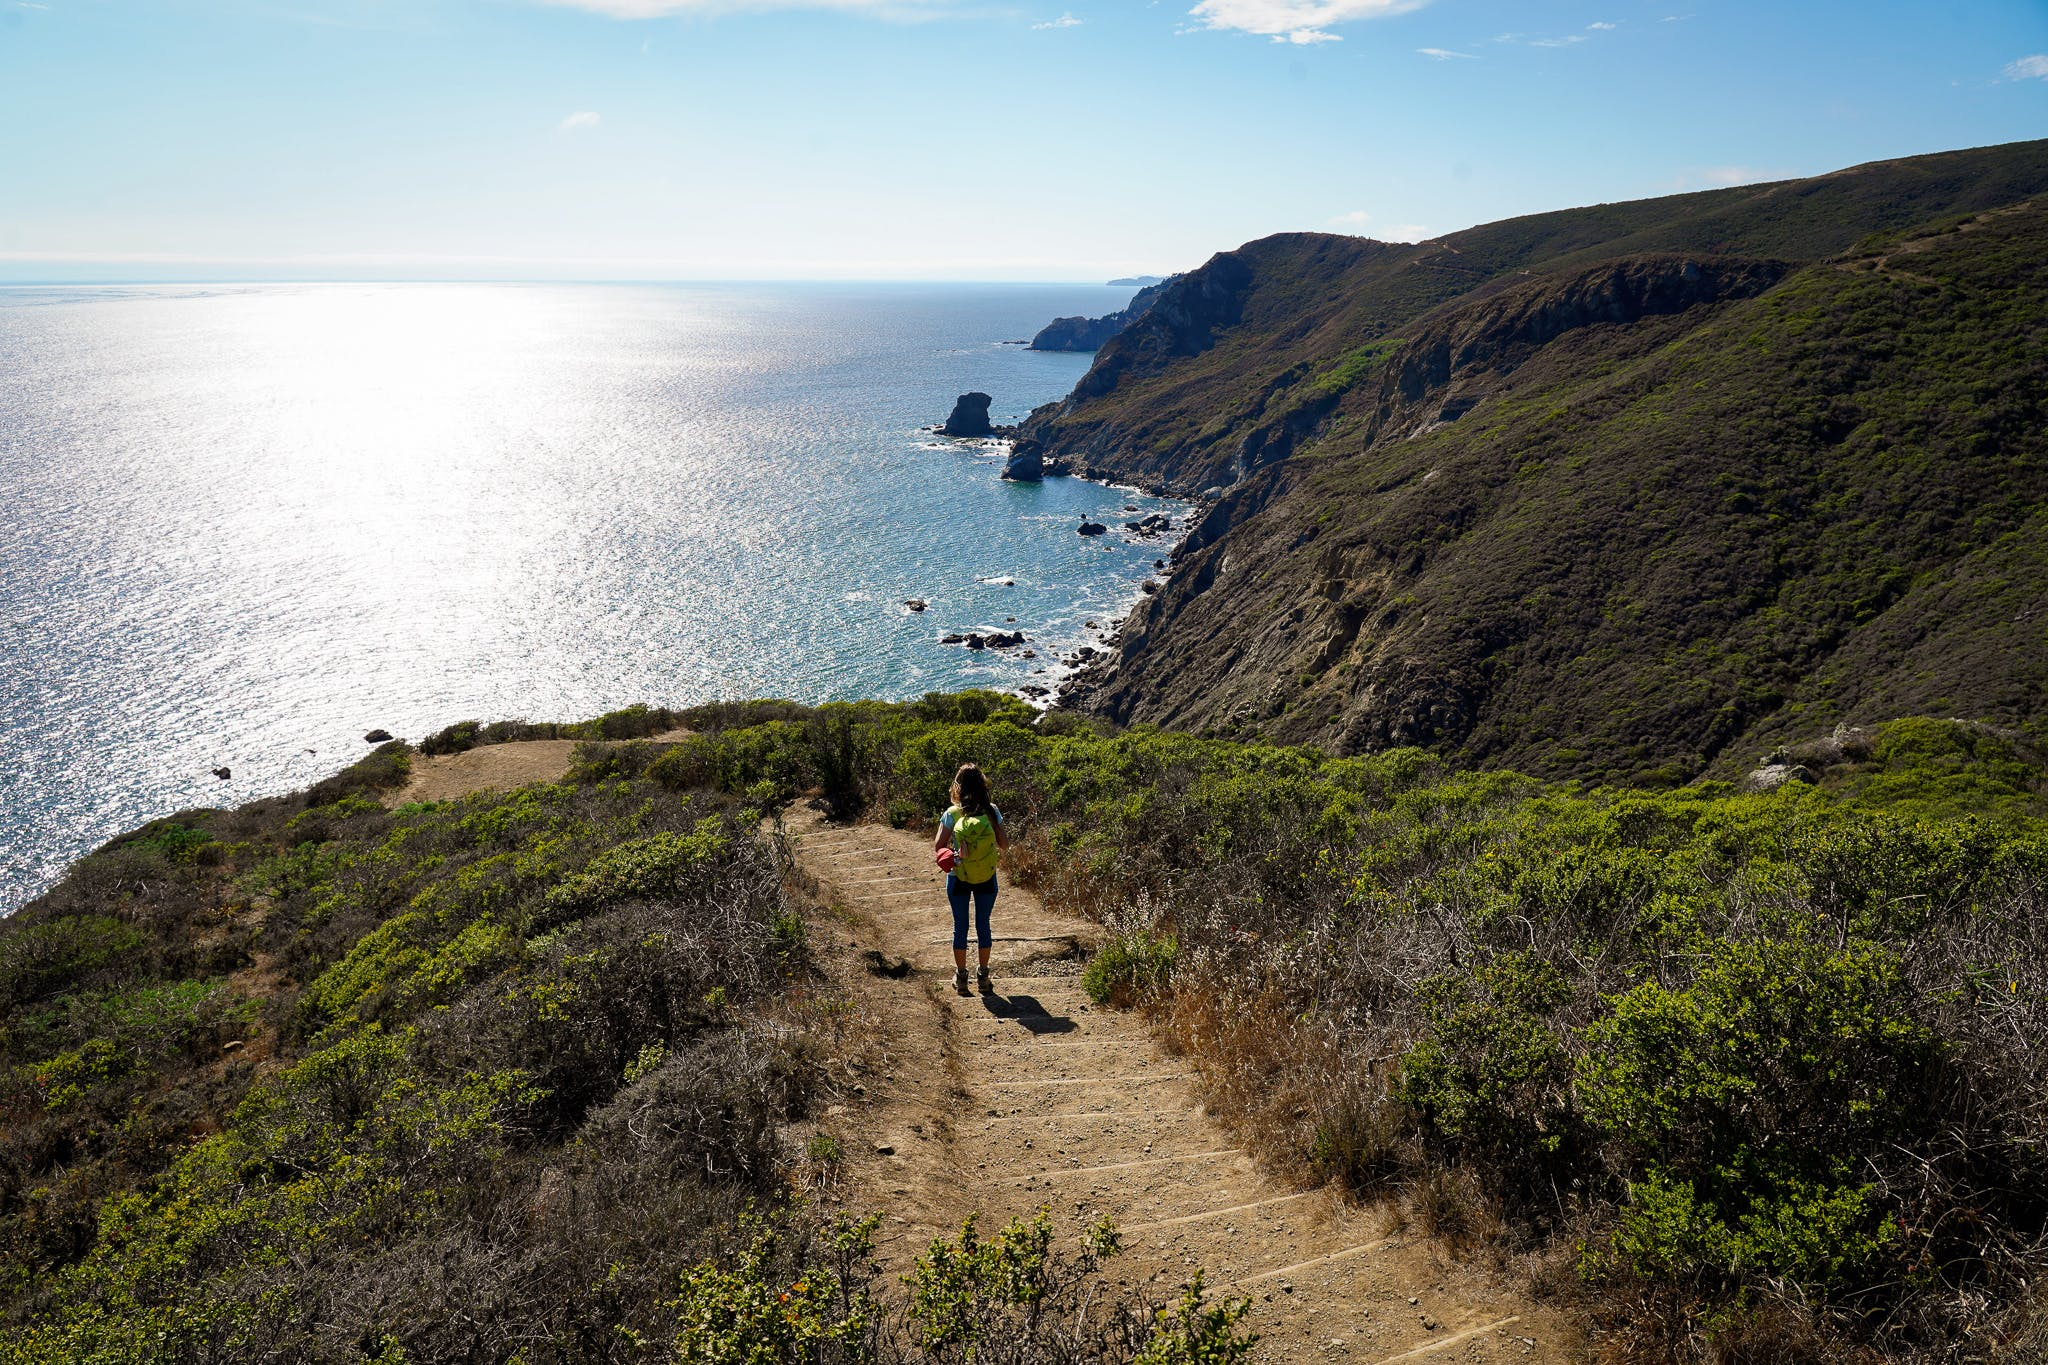 Woman descending dirt steps on the Coastal Trail in the Marin Headlands